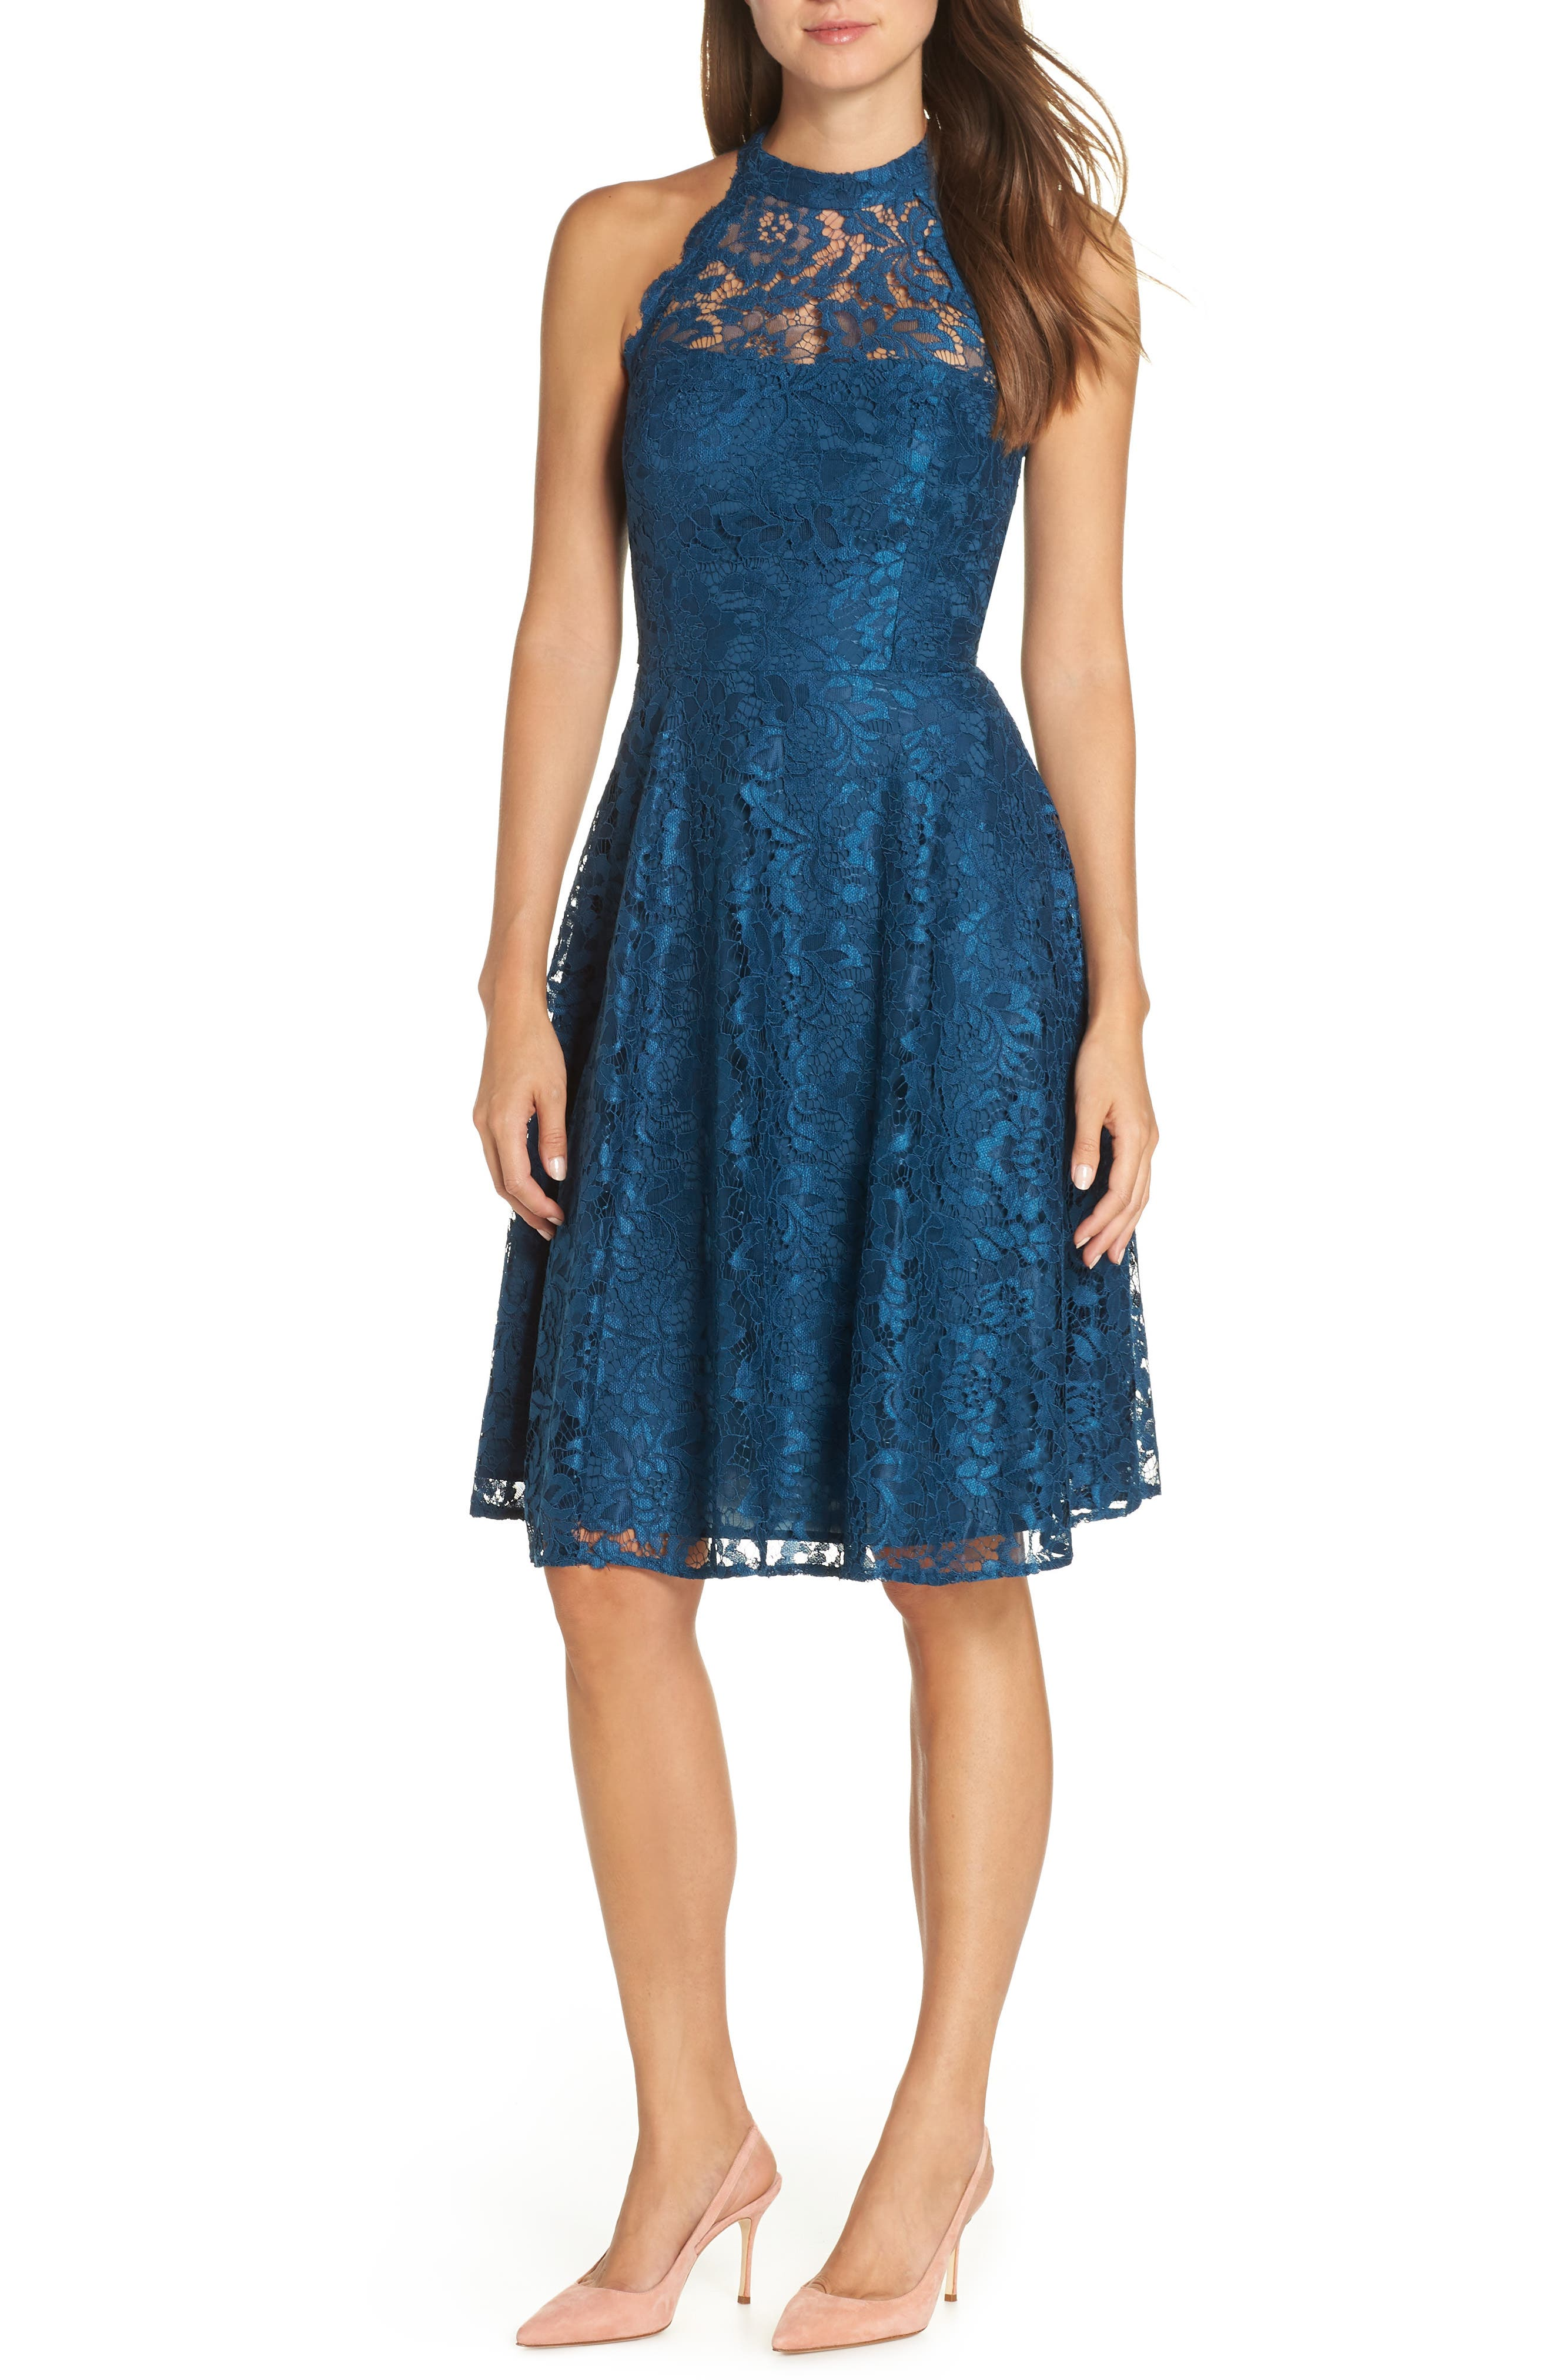 Eliza J Halter Neck Lace Fit And Flare Dress, Blue/green